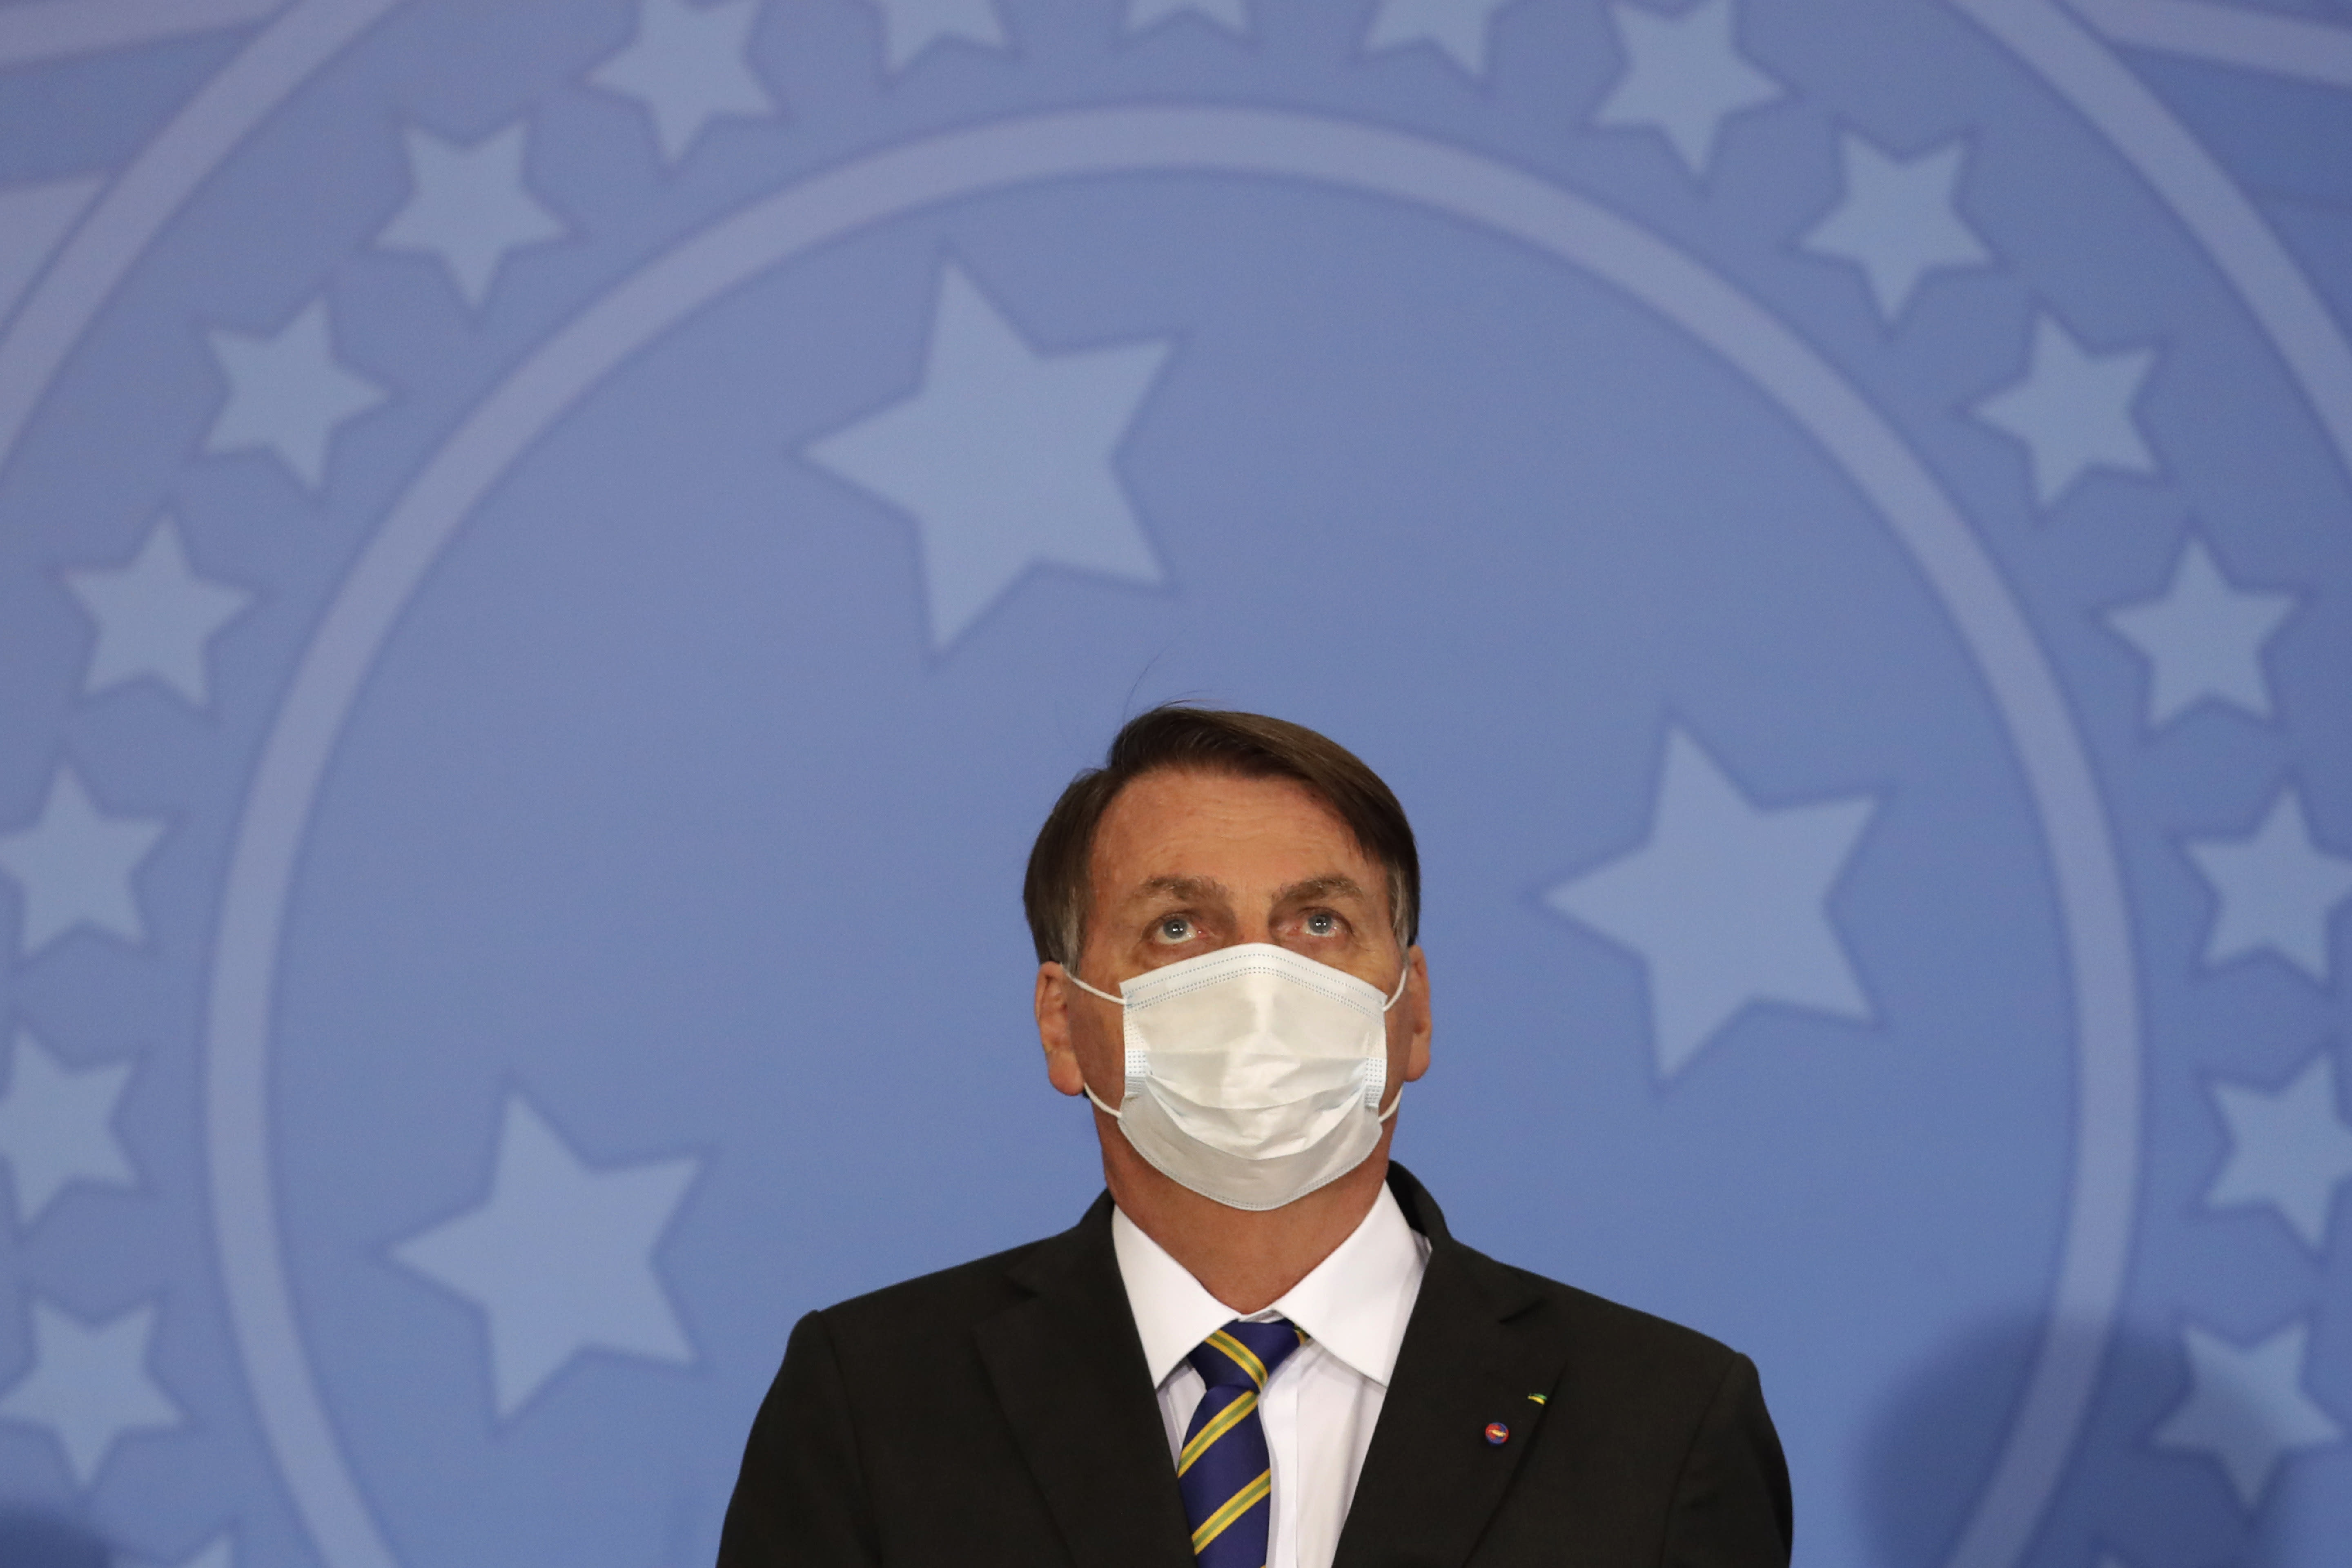 Brazil's President Jair Bolsonaro wearing a protective mask to curb the spread of the new coronavirus, attends the launching ceremony of a rights guarantee program for rural women, at the Planalto Presidential Palace in Brasilia, Brazil, Wednesday, July 29, 2020. (AP Photo/Eraldo Peres)